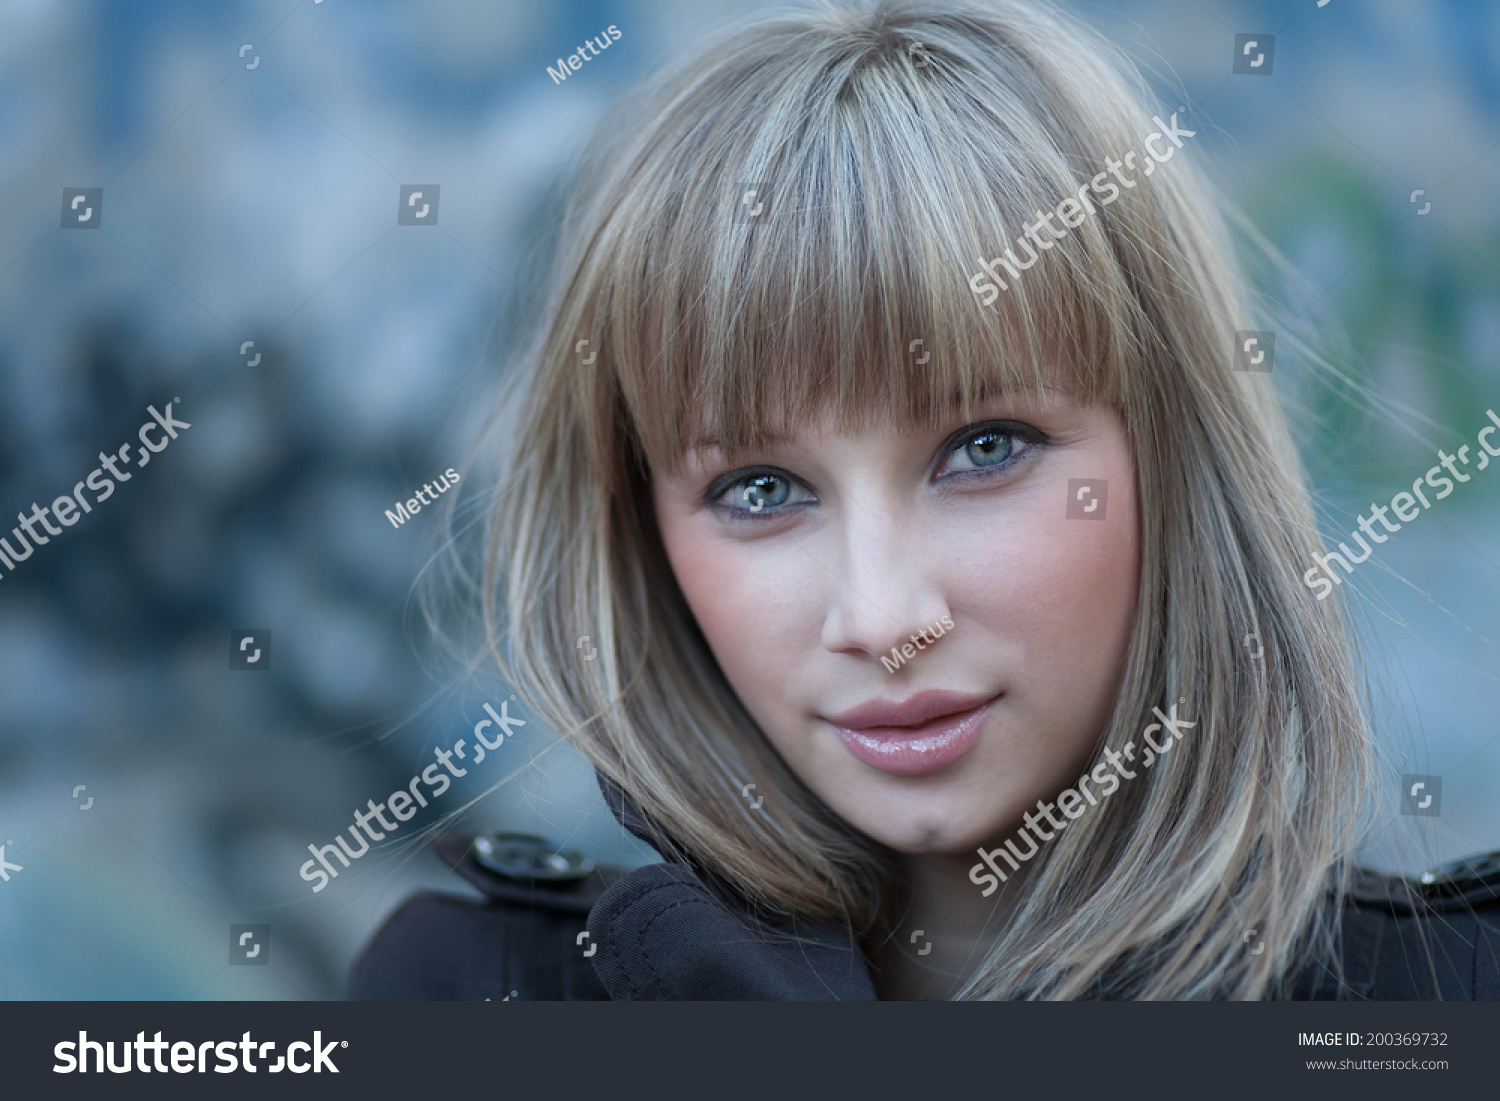 Charming blond haired women headshot against grungy wall. Cute blonde girl headshot in grungy settings. Young women portrait in slums front view. Solitude in the world